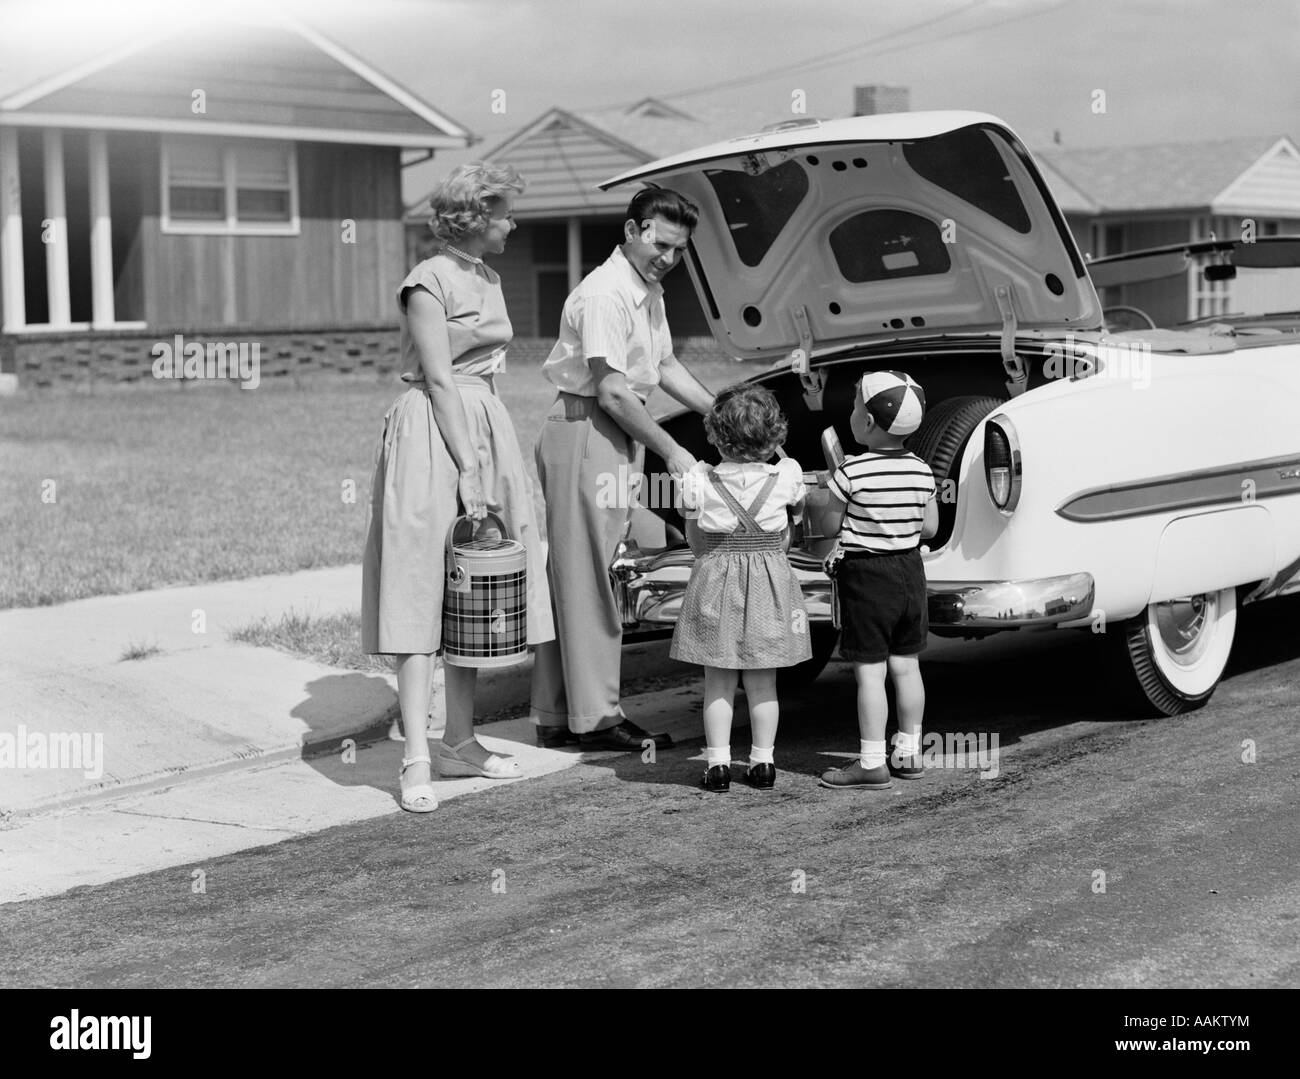 1950s FAMILY PACKING TRUNK OF CAR FOR A PICNIC - Stock Image